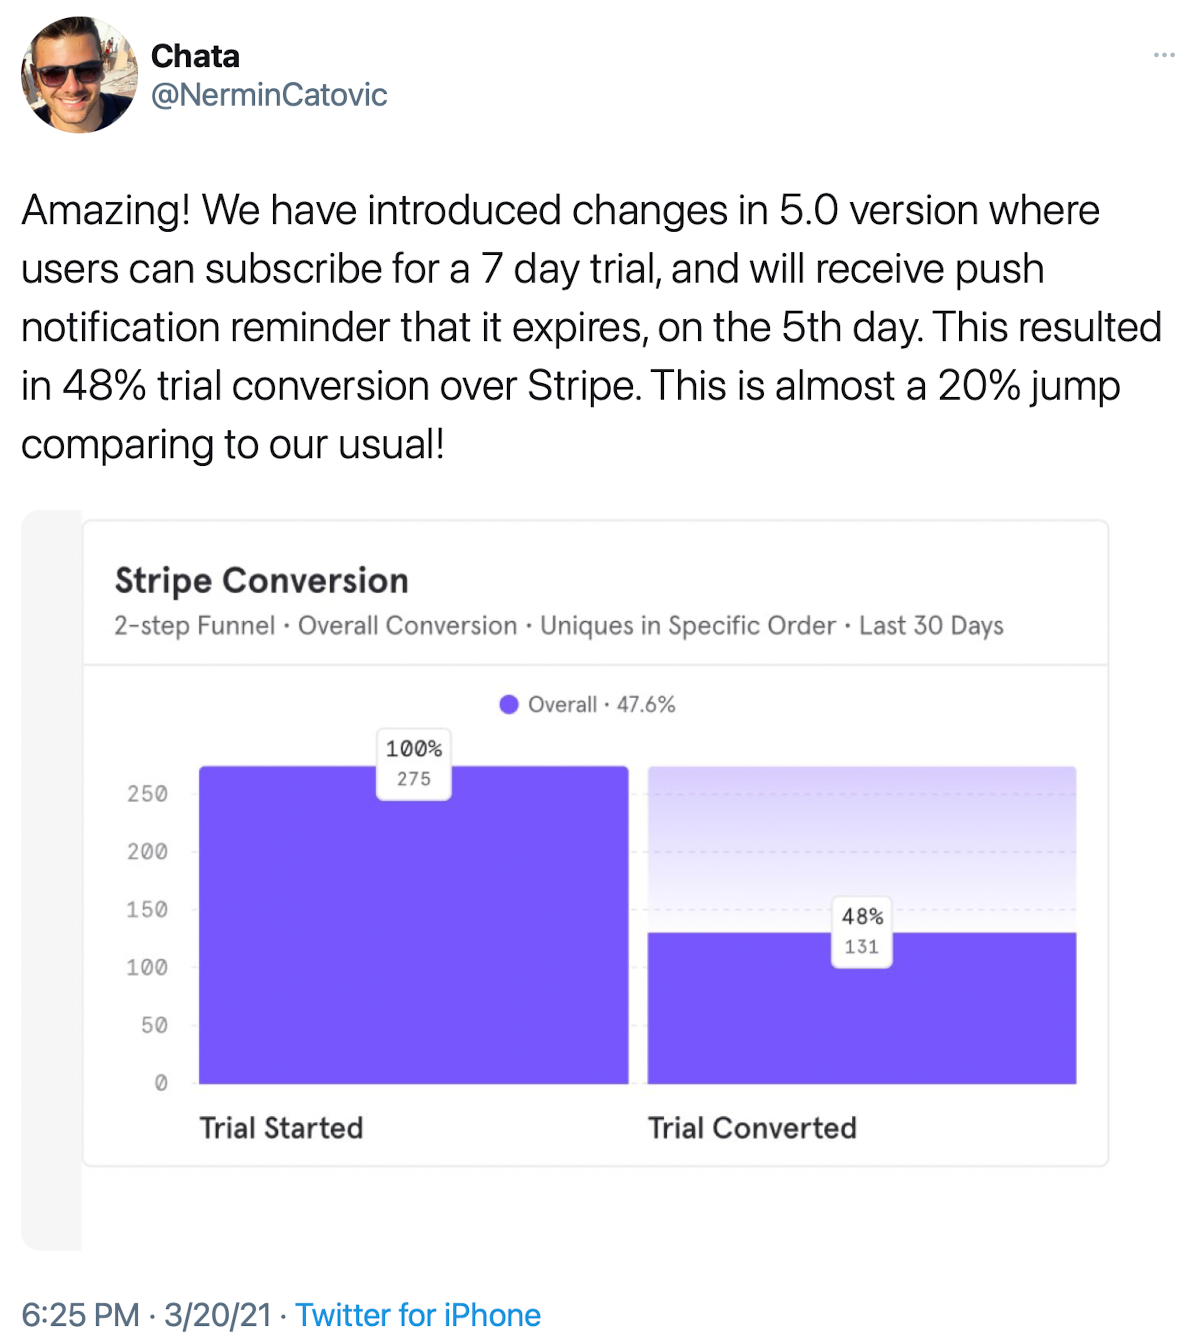 Amazing! We have introduced changes in 5.0 version where users can subscribe for a 7 day trial, and will receive push notification reminder that it expires, on the 5th day. This resulted in 48% trial conversion over Stripe. This is almost a 20% jump comparing to our usual!